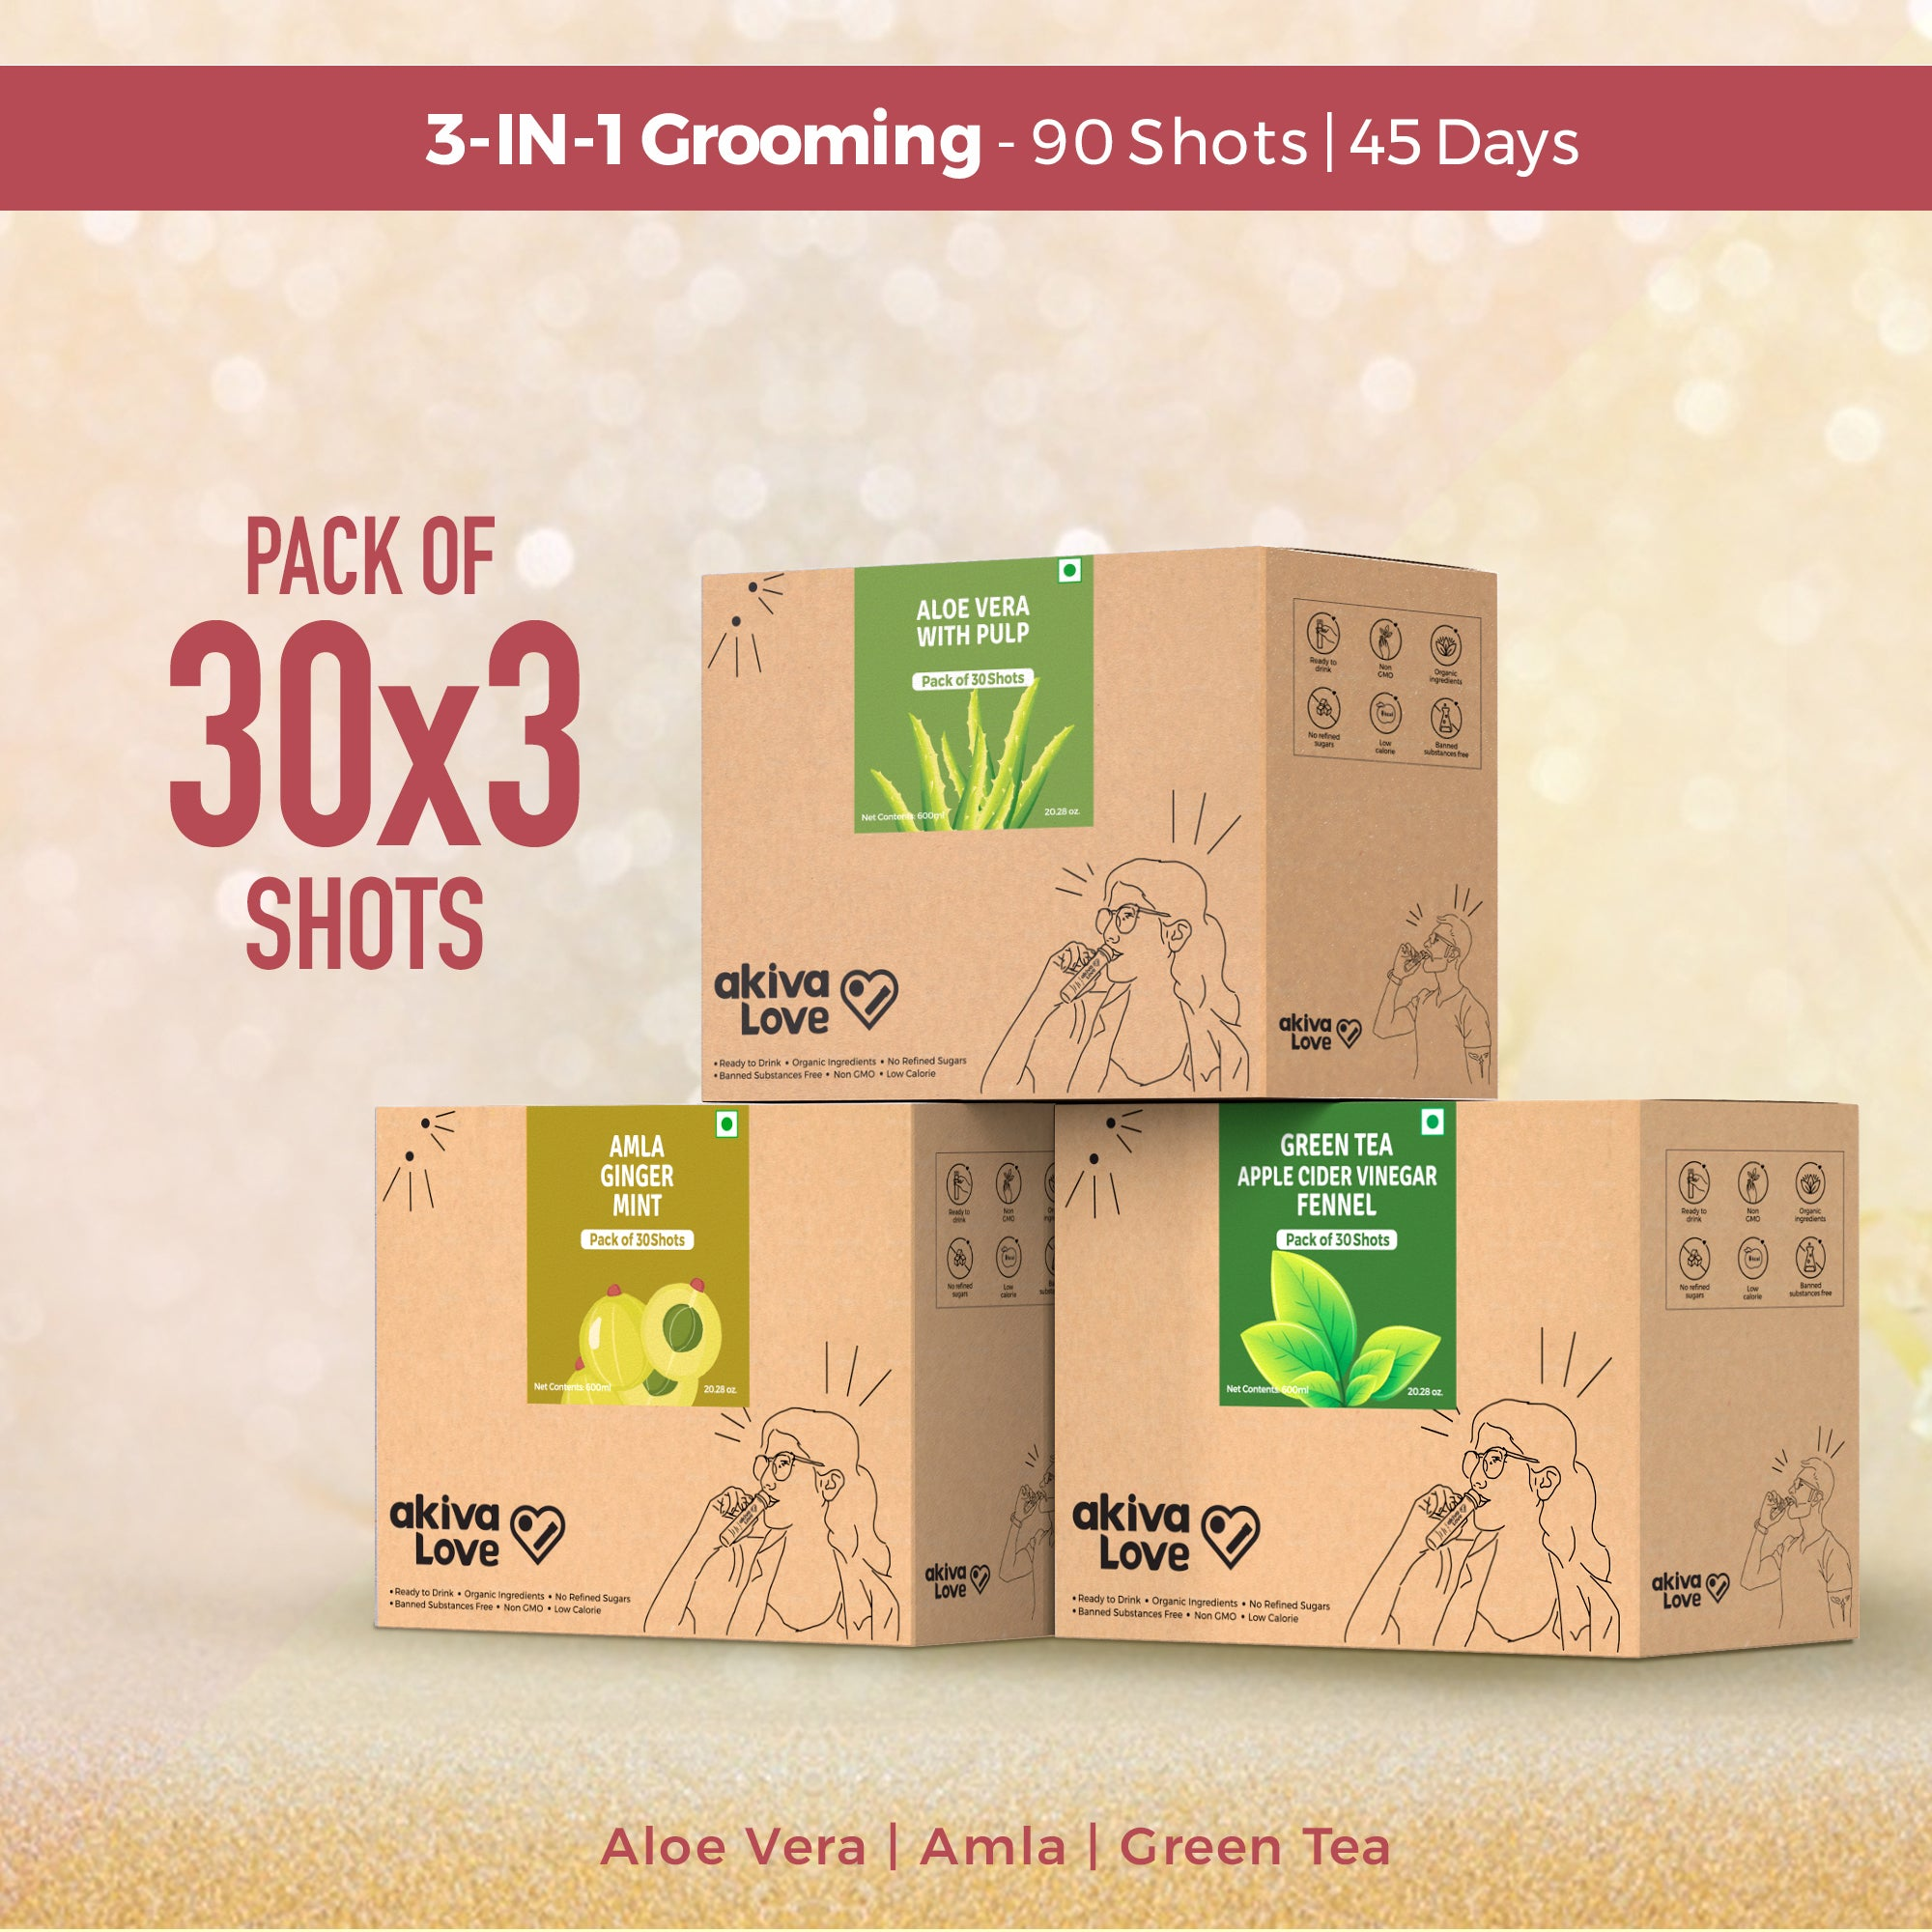 3-in-1 Grooming Pack - Amla + Aloe Vera + Green Tea Apple Cider Vinegar | 90 shots | 45 Days |